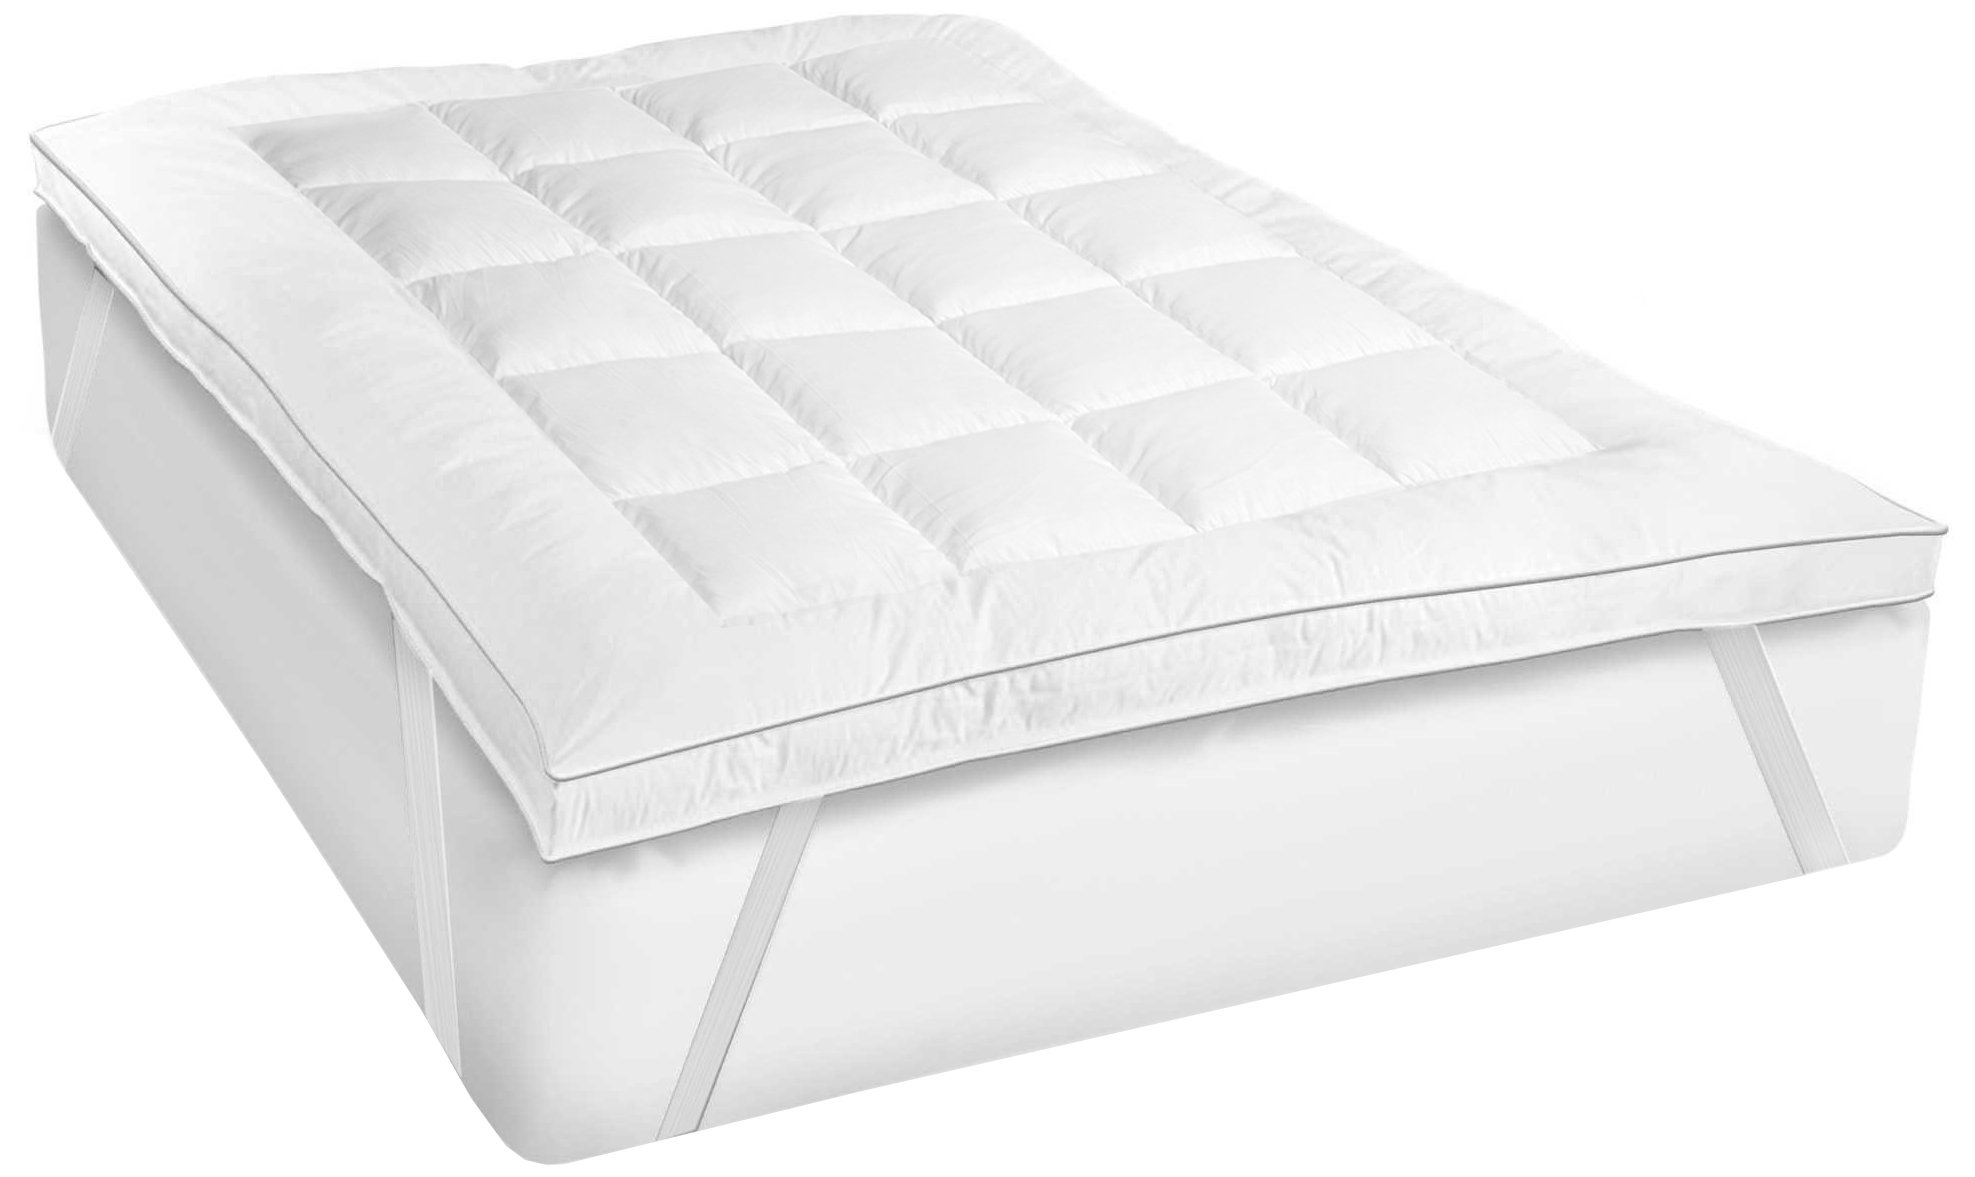 Sweet Home Collection Fiber-MAT-Topper-T Soft and Luxurious Fiber Bed Mattress Pad, Twin